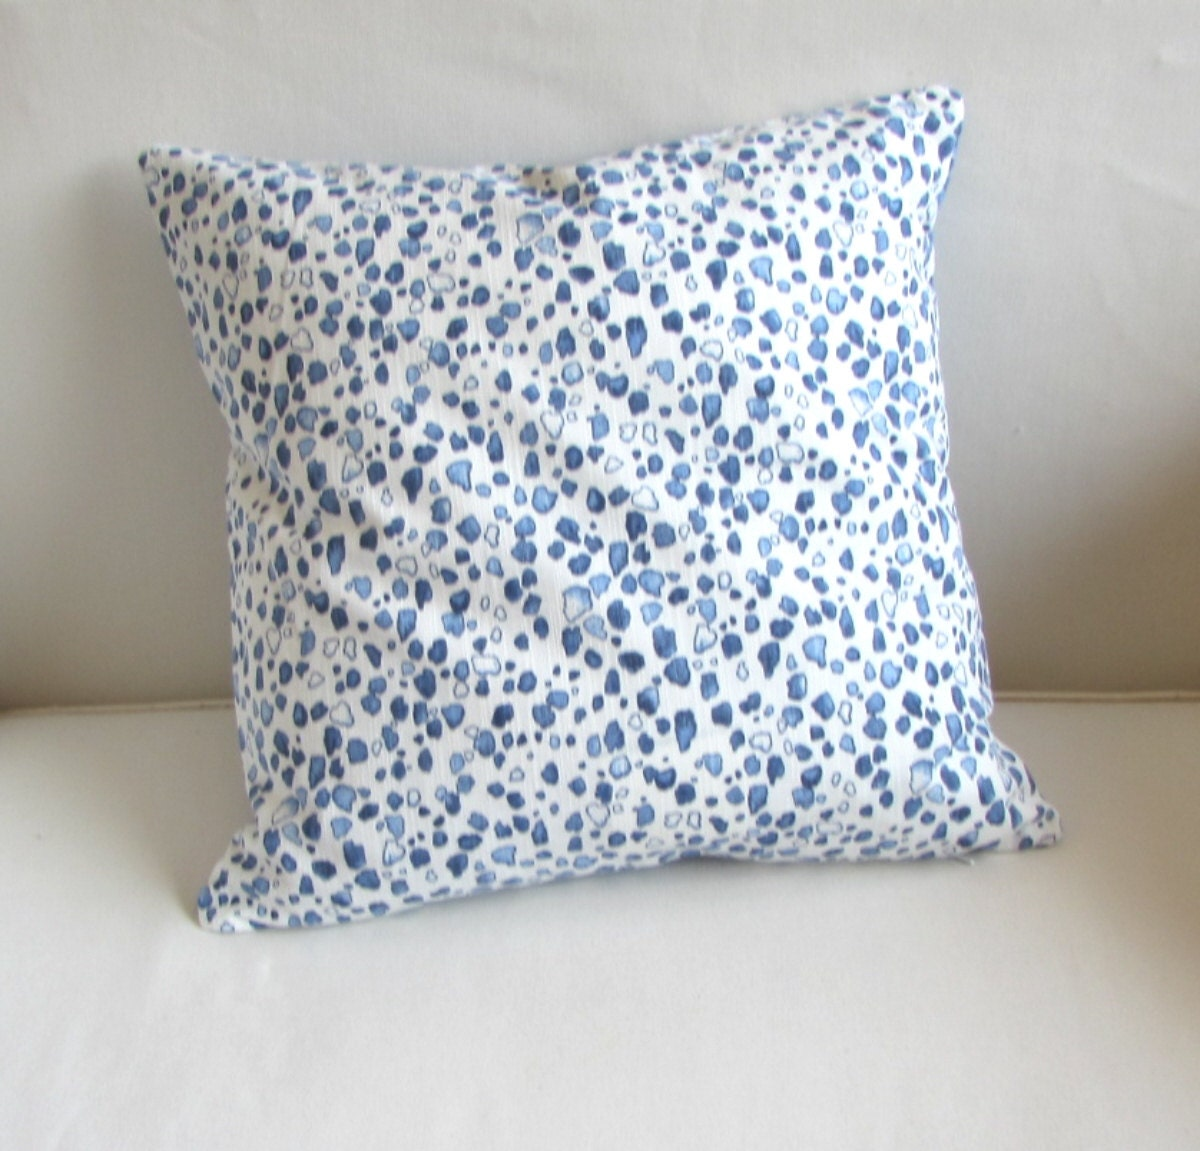 Wedgewood Blue Throw Pillows : CALICO WEDGEWOOD decorative Pillow cover blue 18x18 20x20